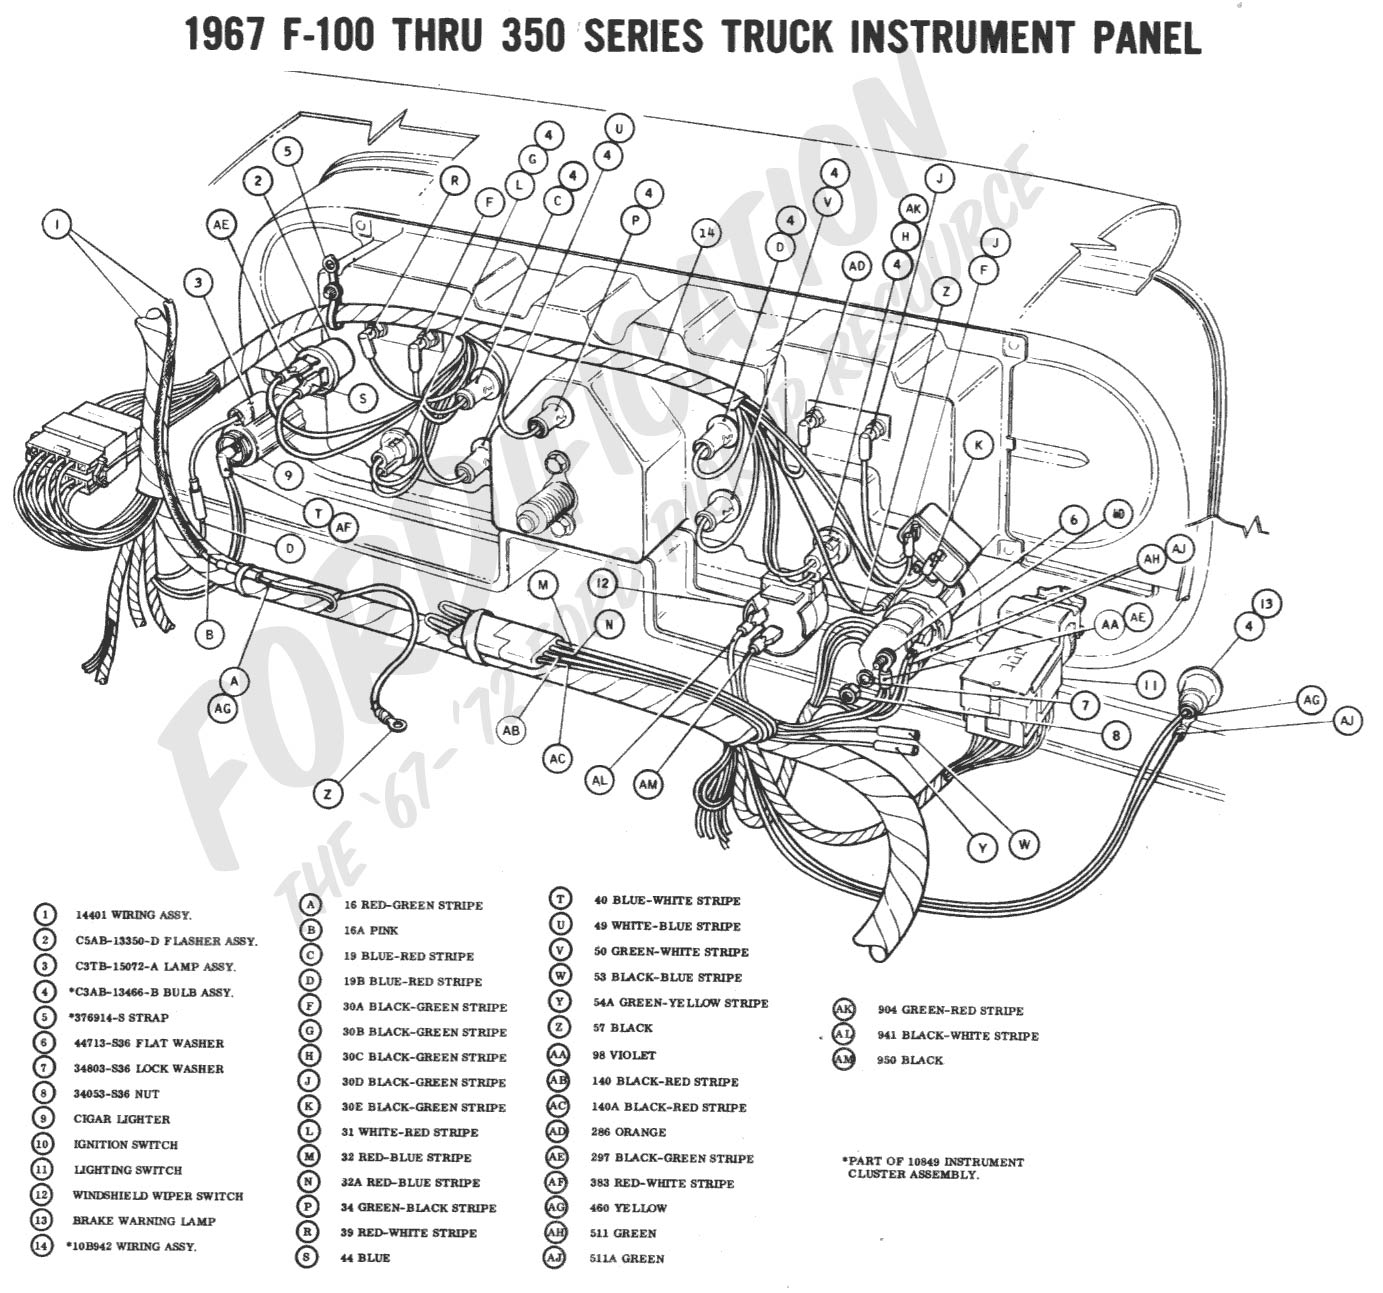 1967 ford f250 wiring diagram 1967 ford thunderbird wiring diagram #6